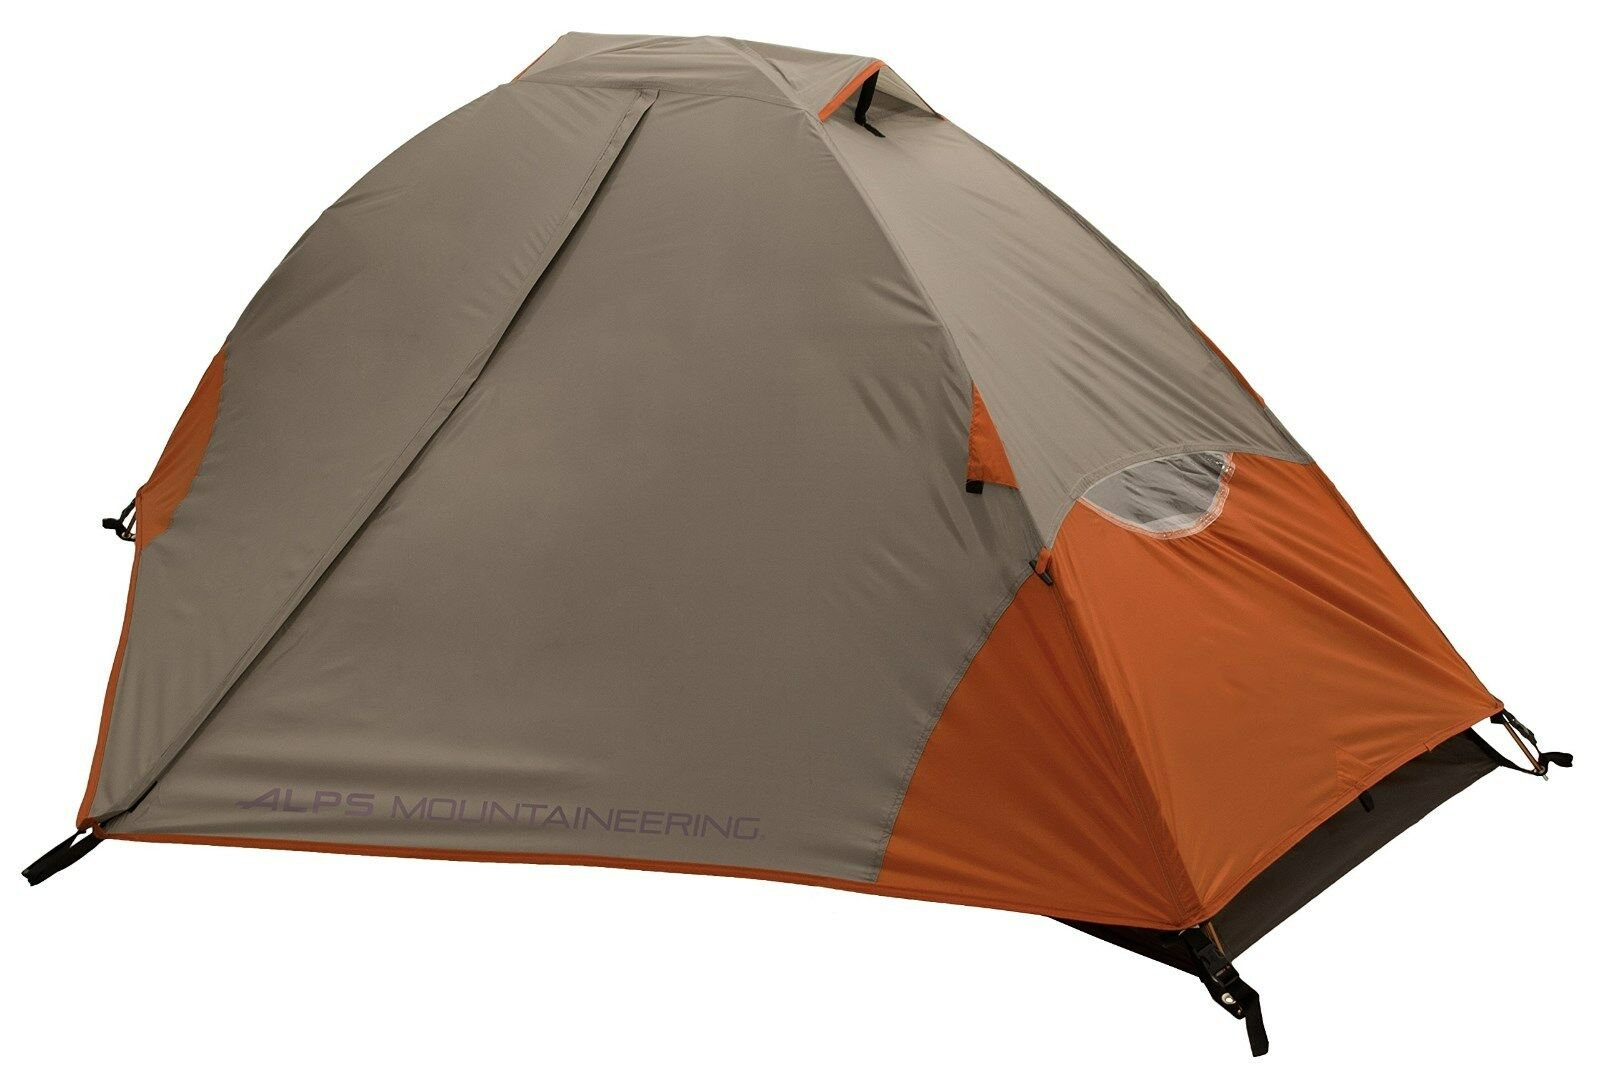 ALPS Mountaineering 5024617 Lynx 1 Person Tent New Free Shipping